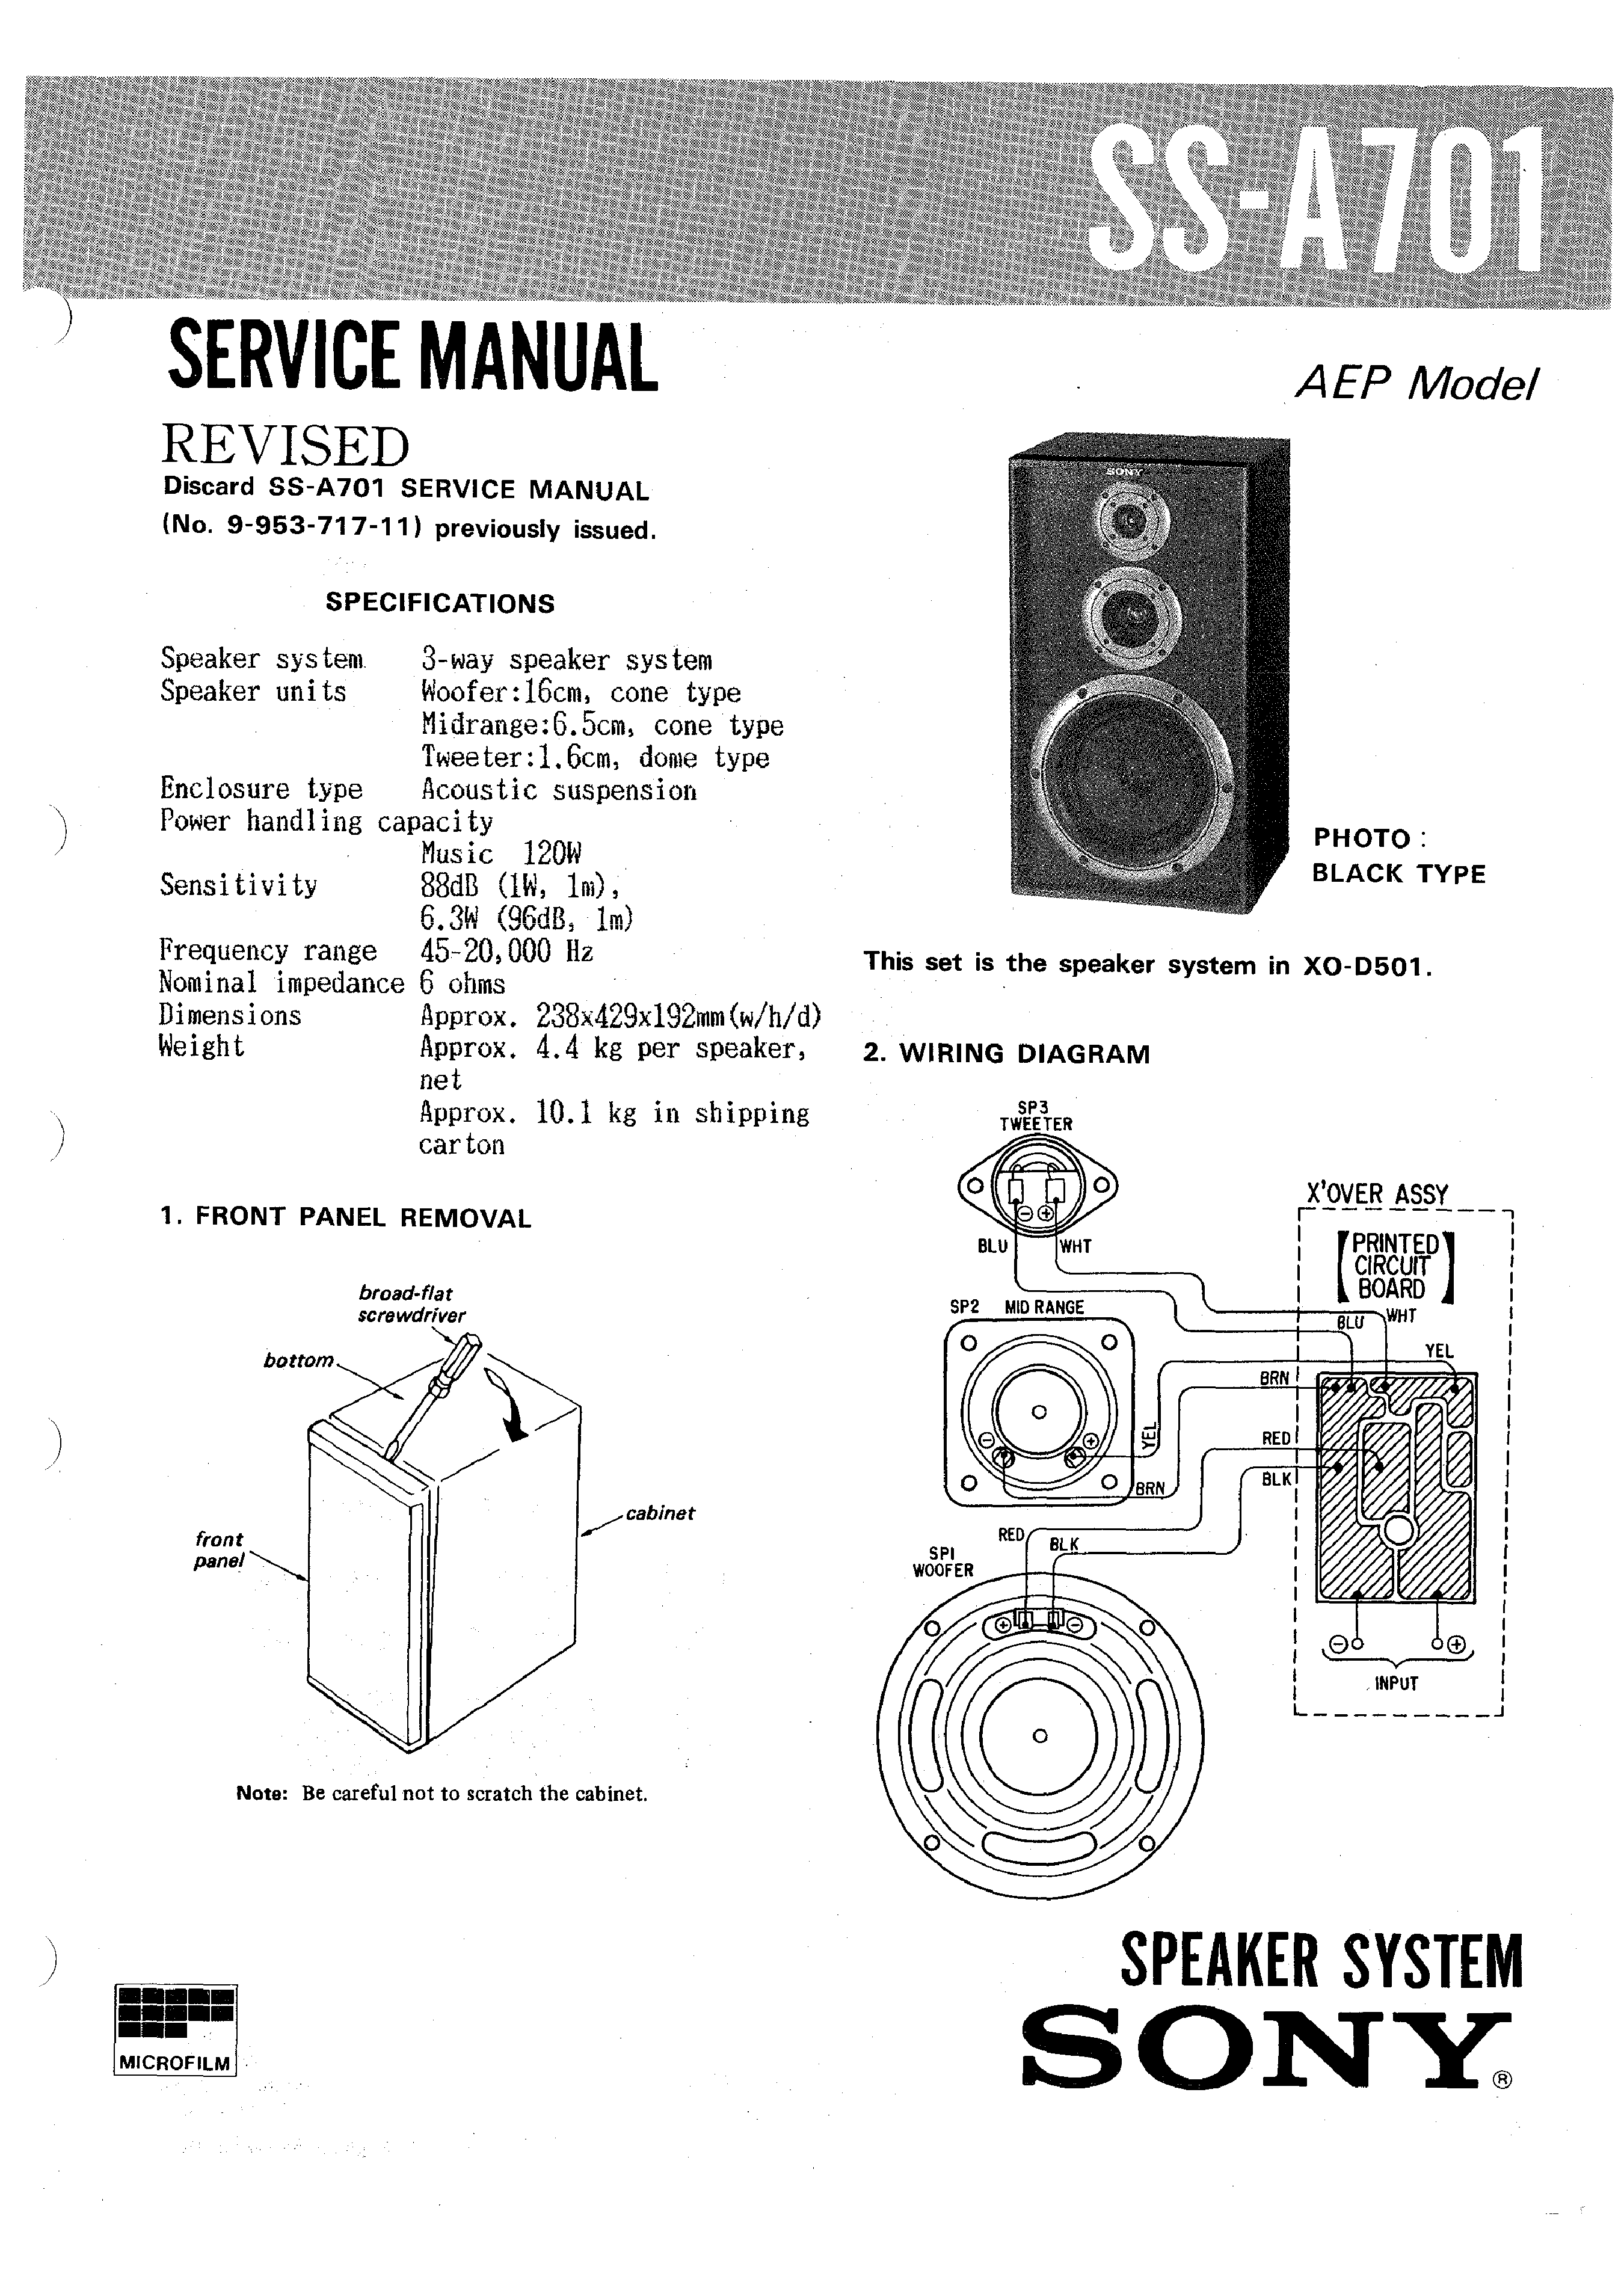 Sony Ssa701 Service Manual Immediate Download